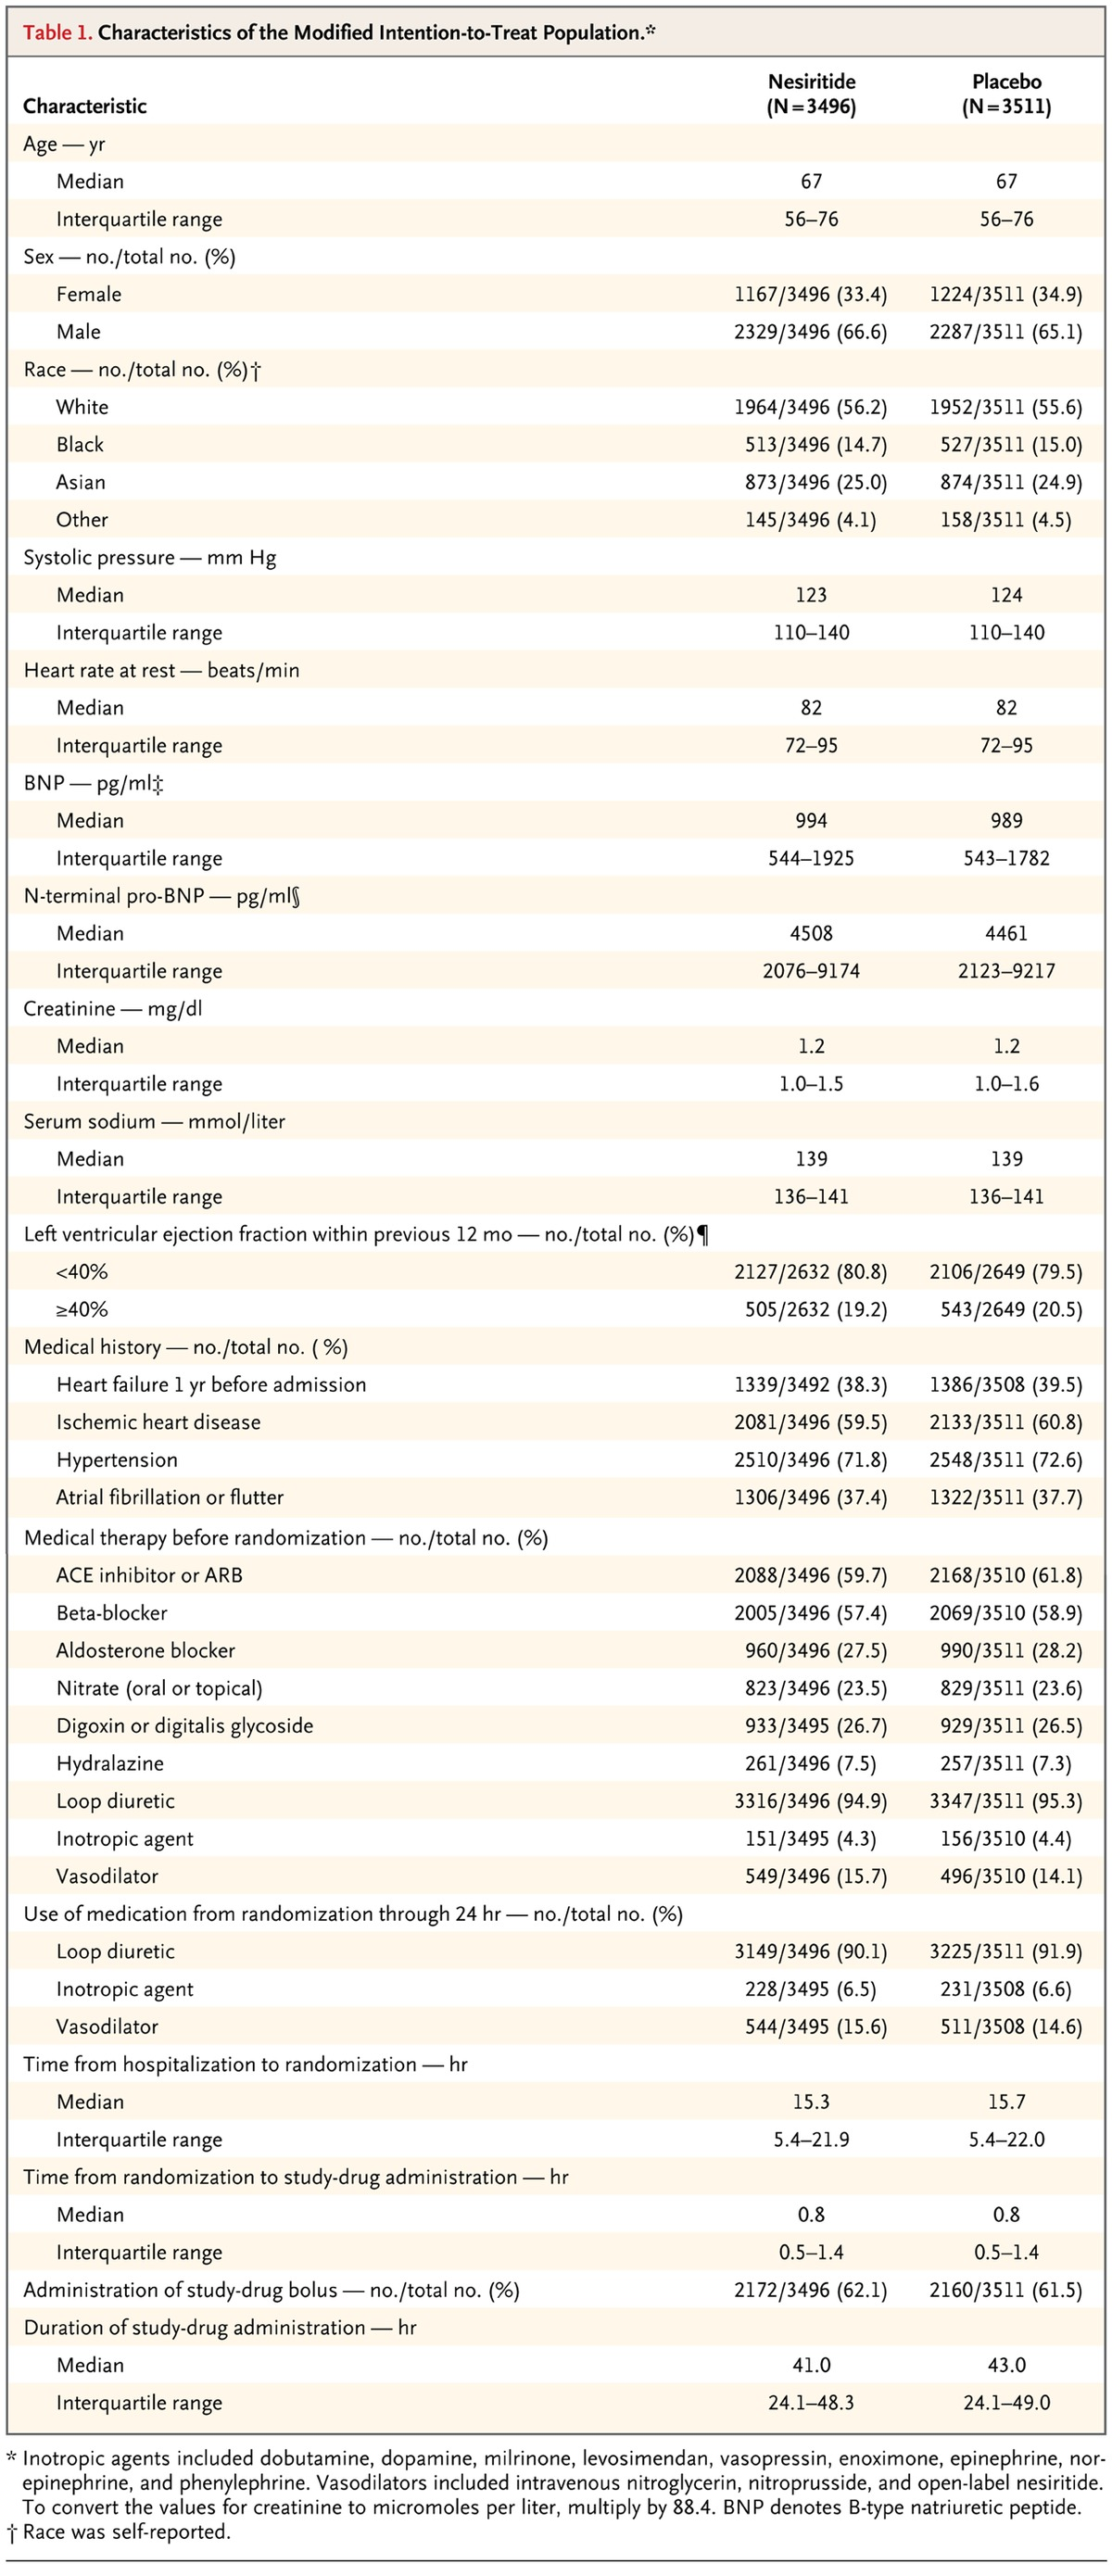 effect of nesiritide in patients with acute decompensated heart